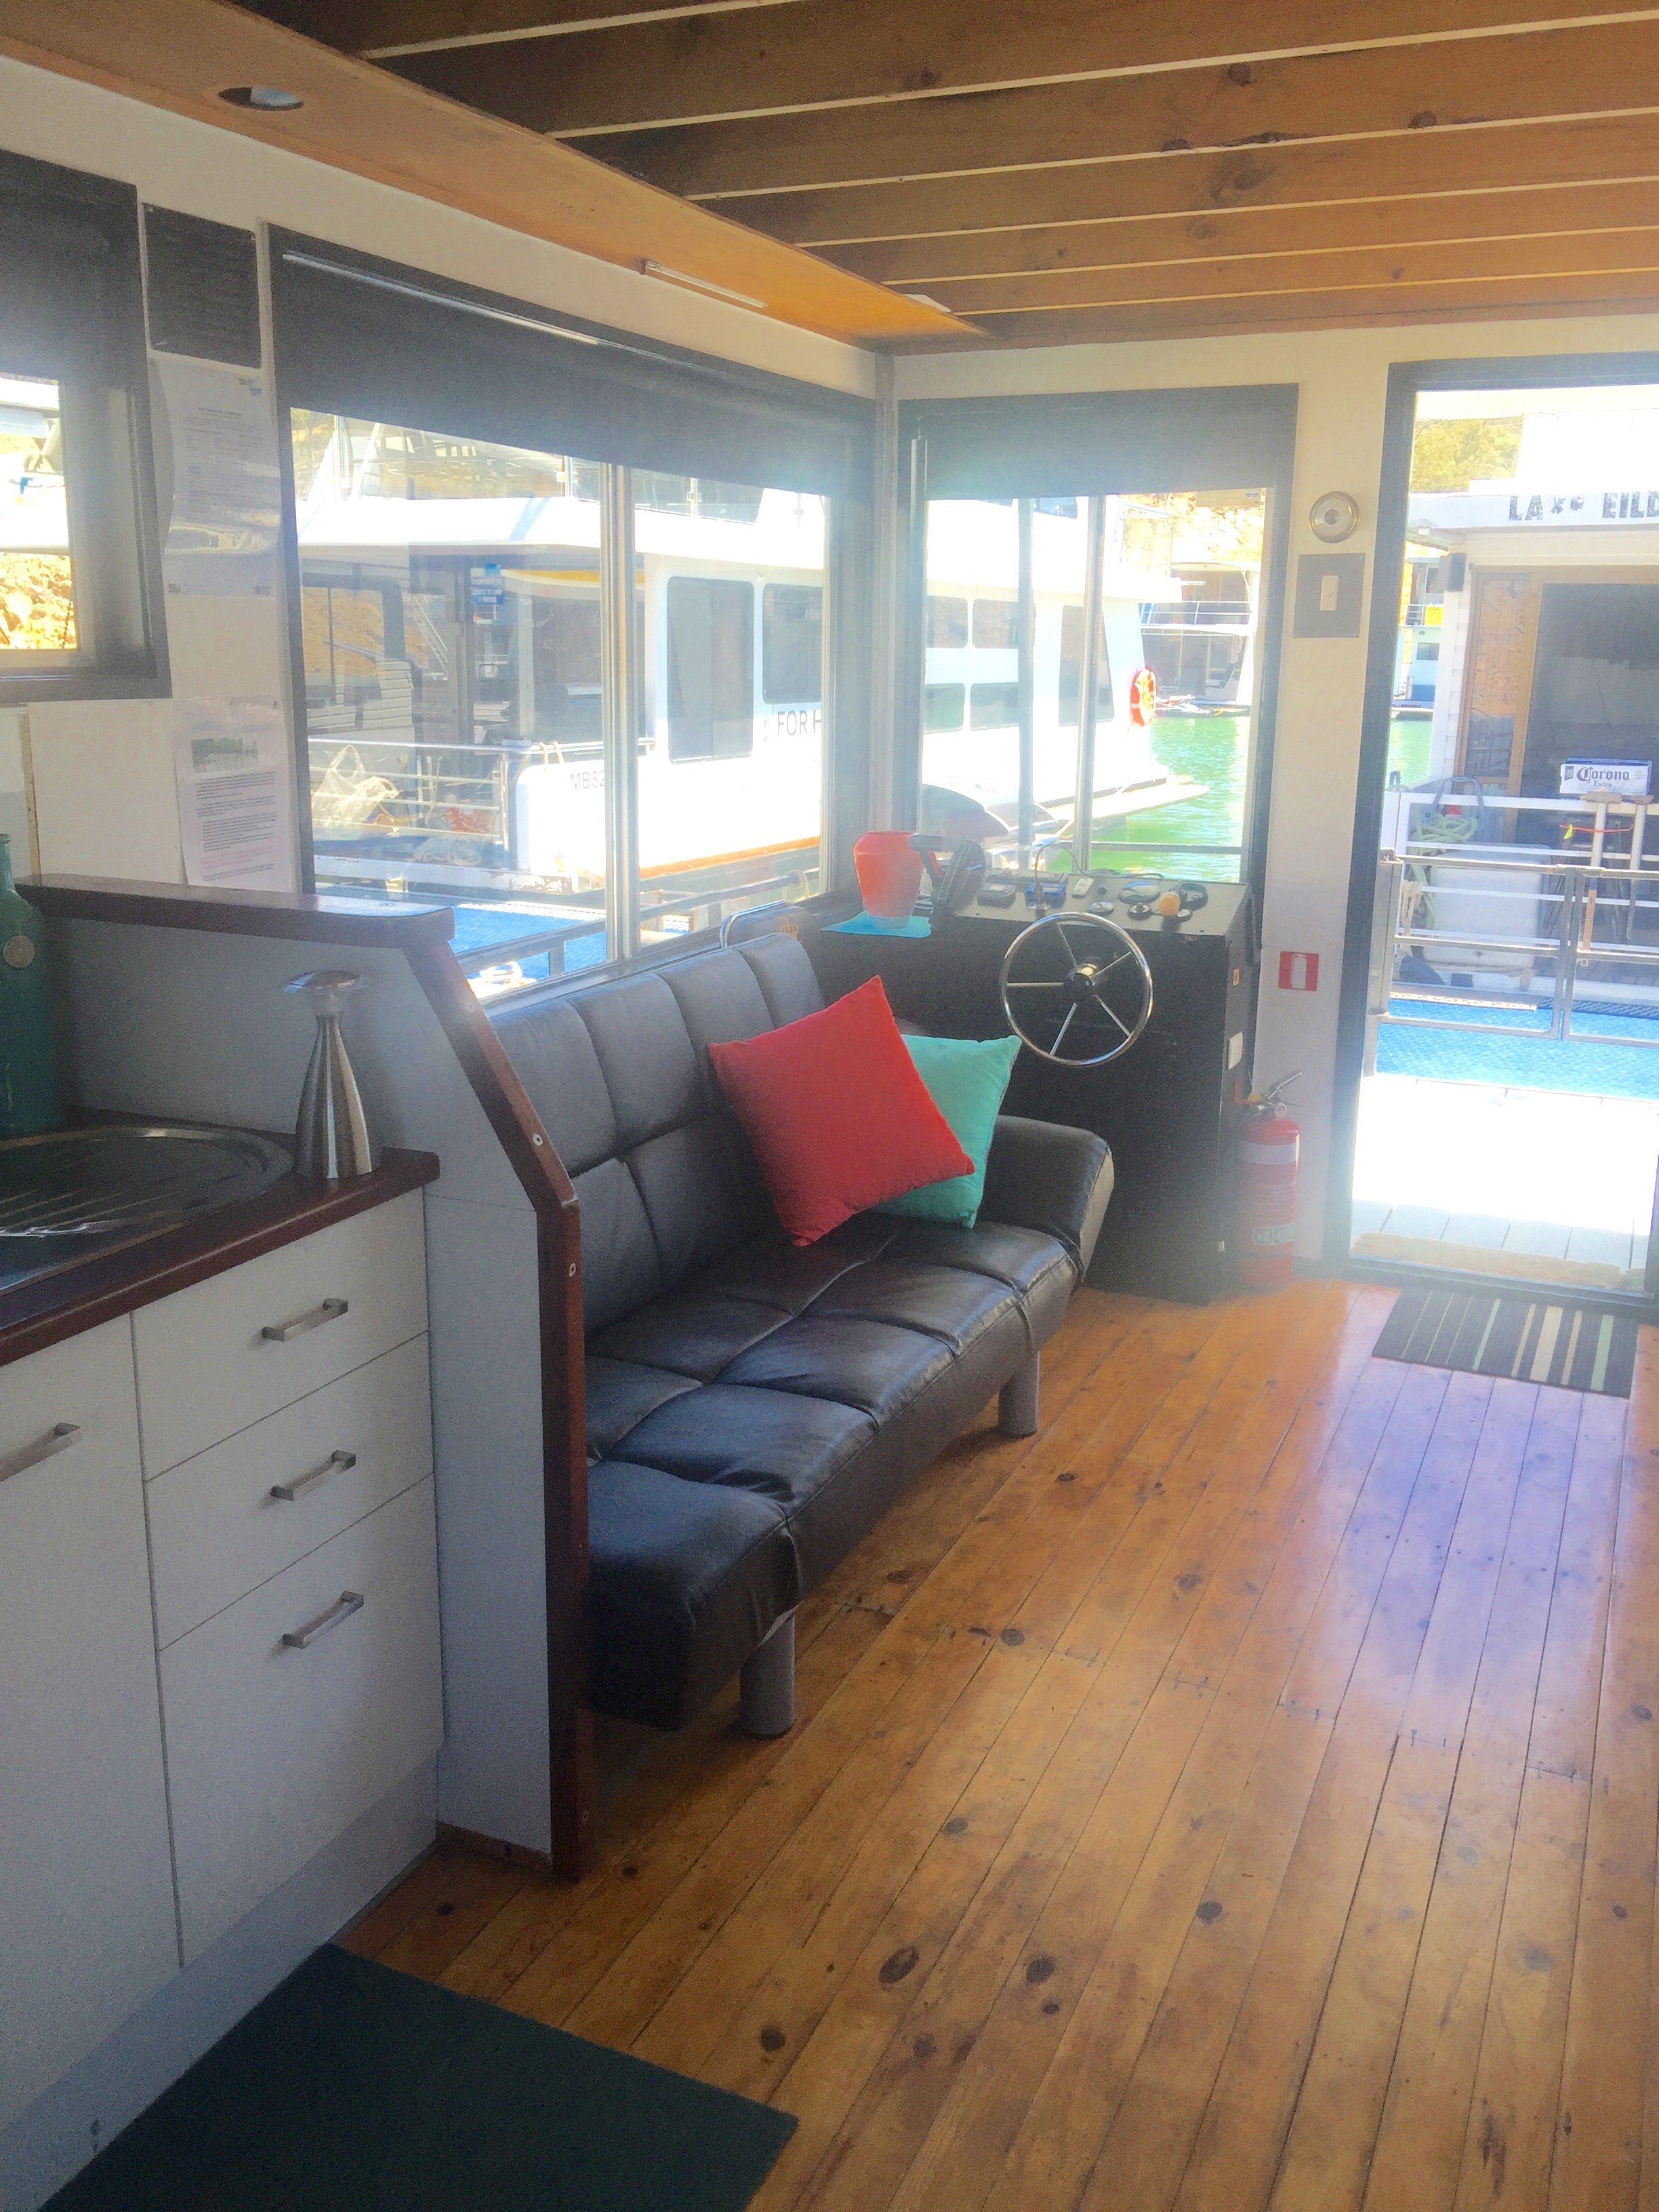 Interior view of the houseboat